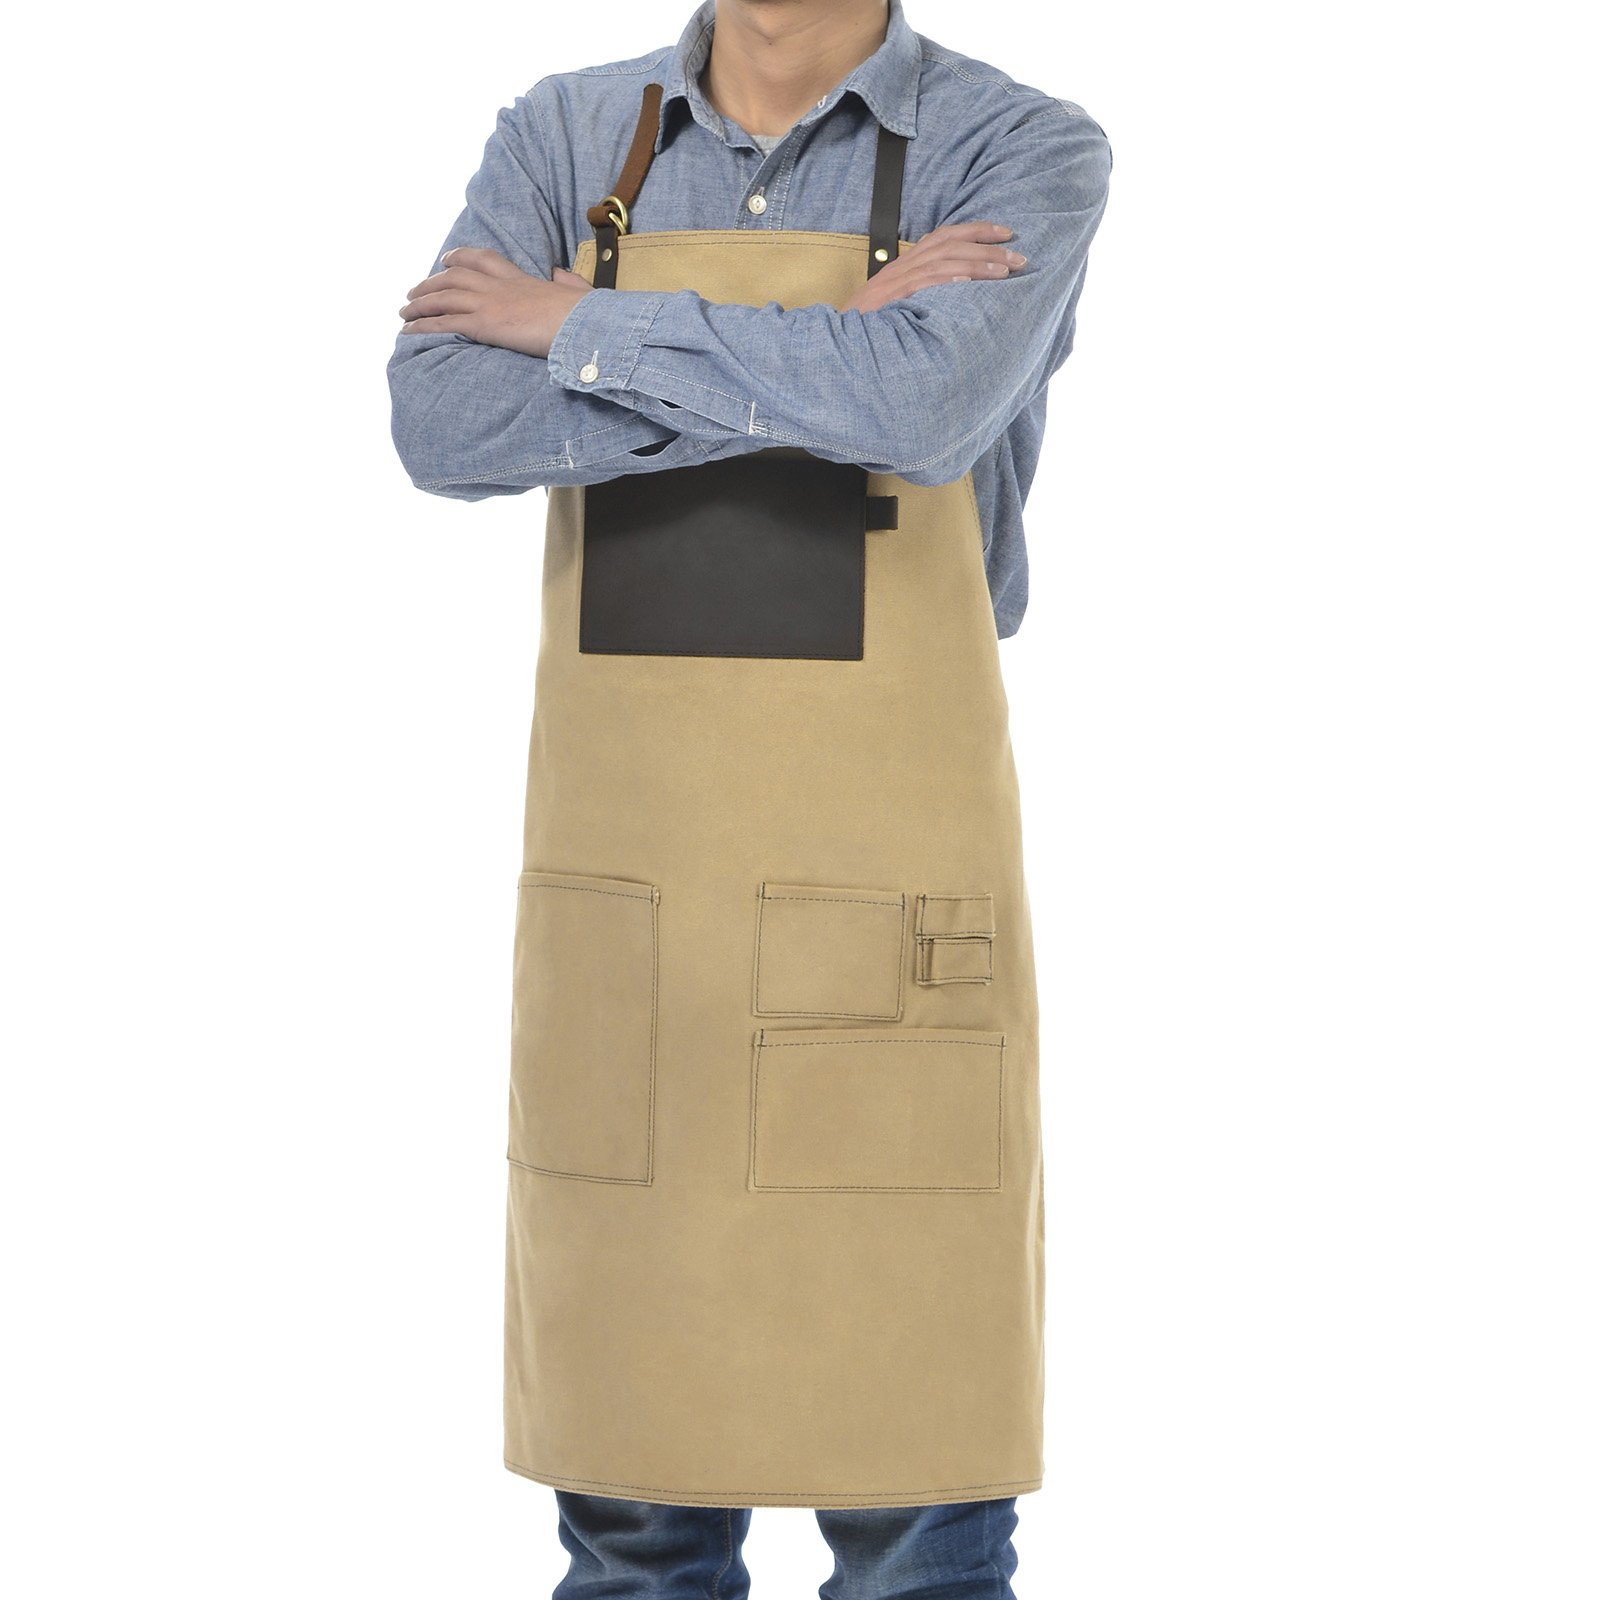 VEEYOO Heavy Duty Waxed Canvas Utility Apron with Pockets, Adjustable Shop Work Tool Welding Apron for Men and Women, Tan, 27x34 inches by VEEYOO (Image #2)